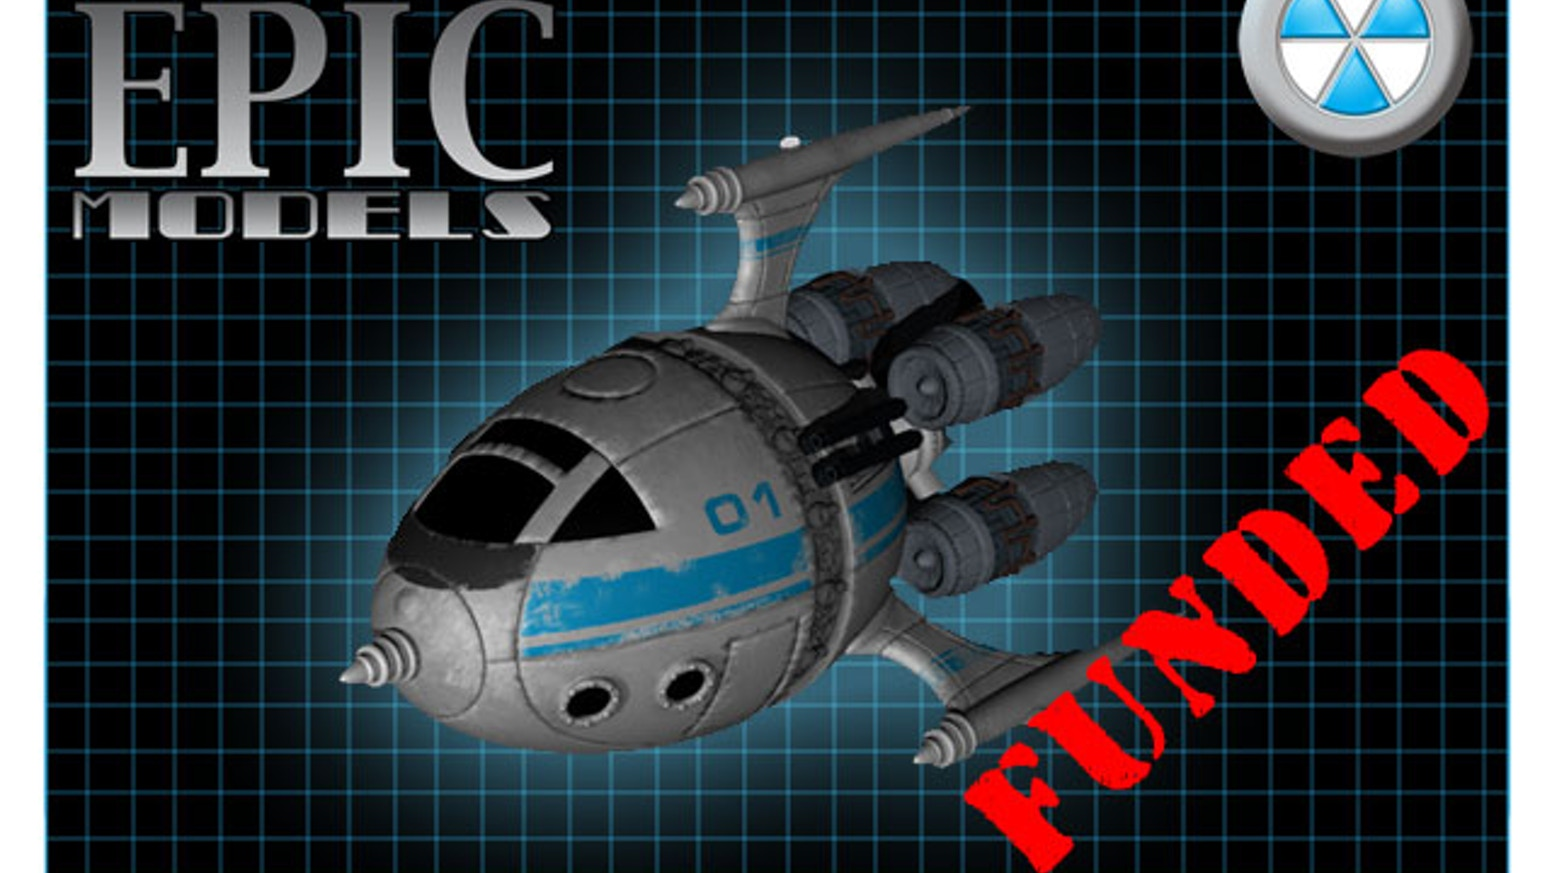 The ISW-69F Scoutship is a 1/48 scale multi-piece resin and pewter kit suitable for many sci-fi tabletop games.